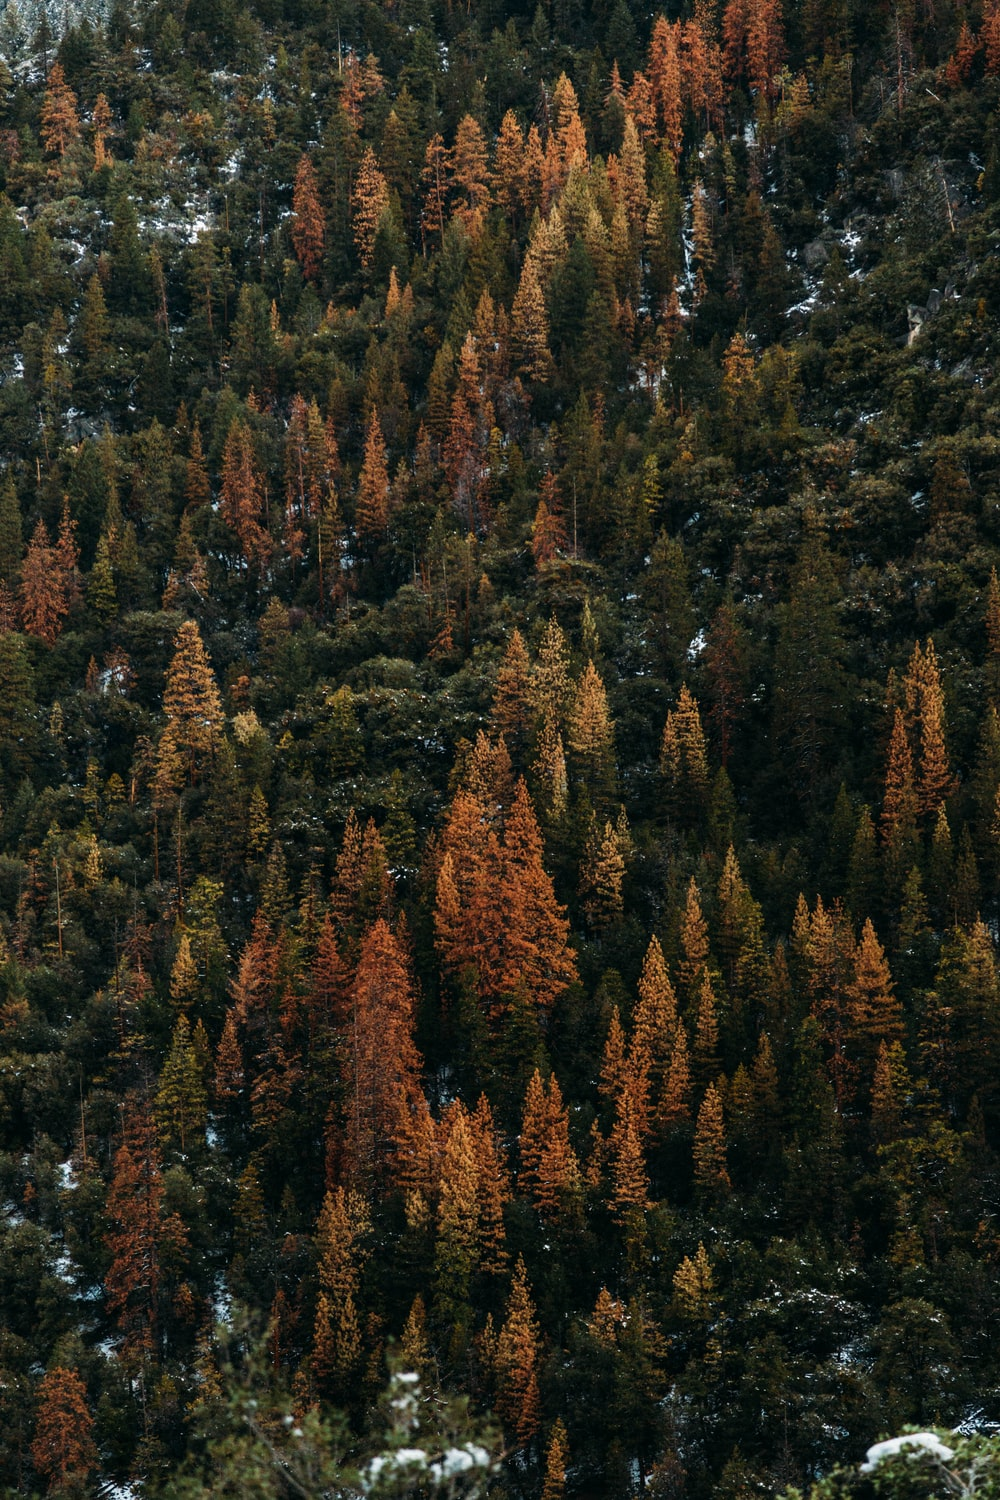 areal view of green pine trees